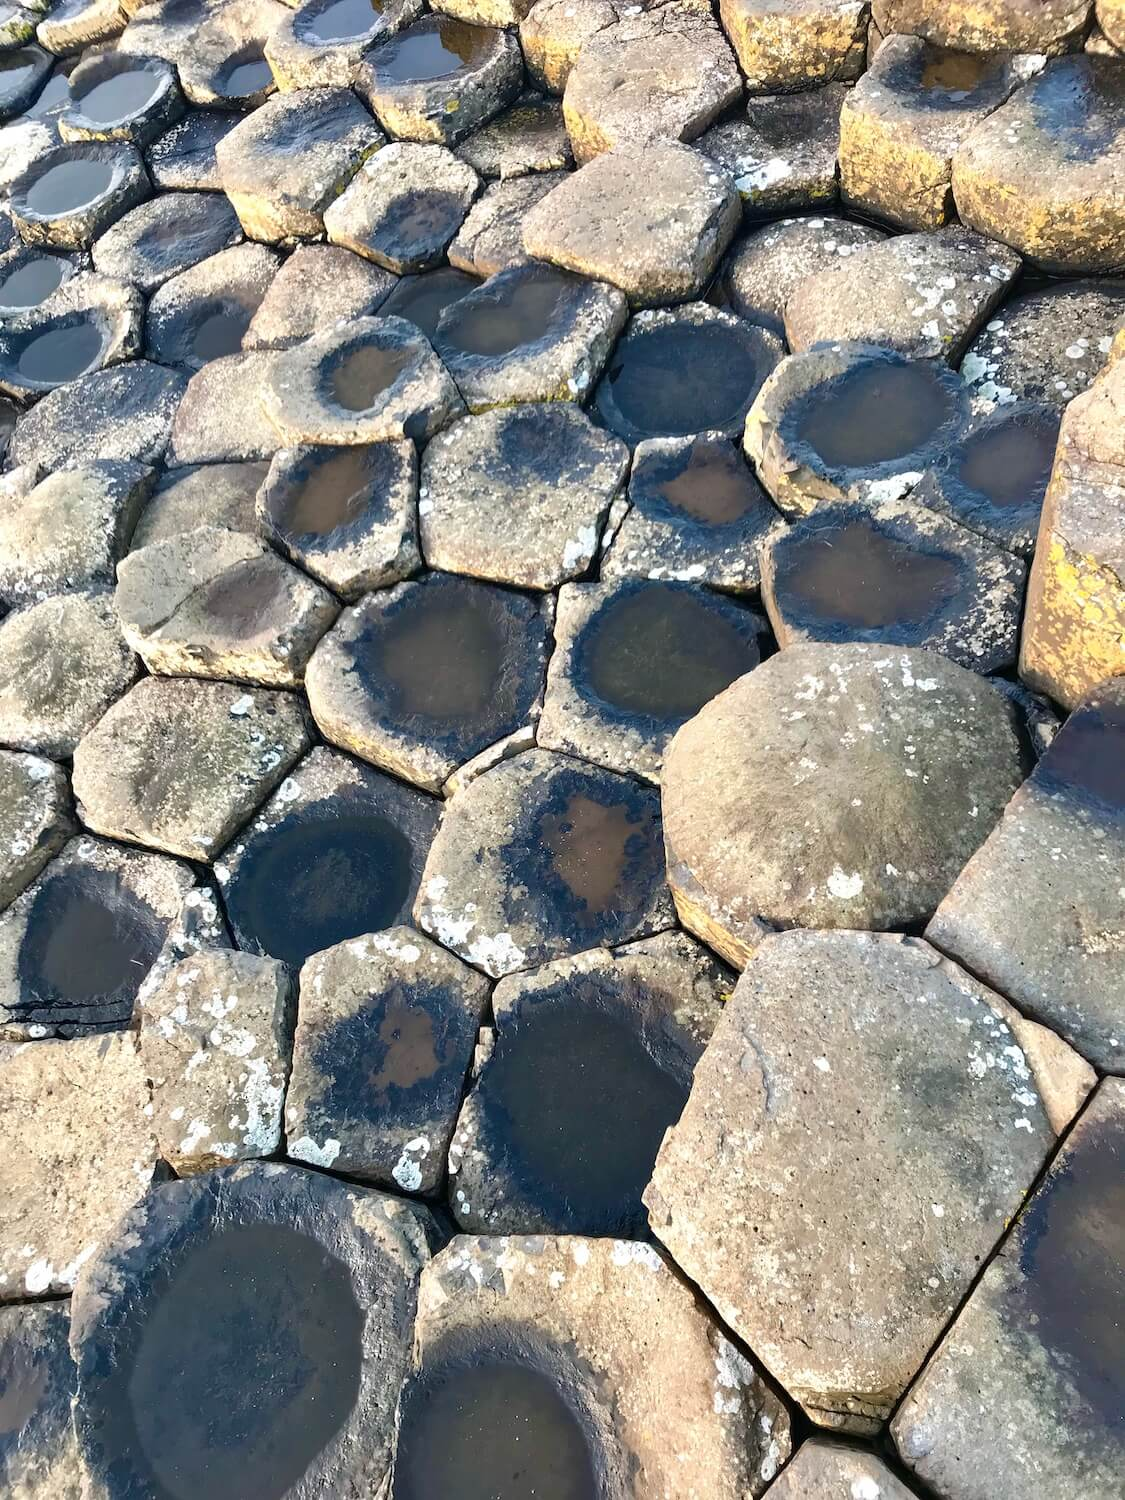 The Giant's Causeway is an area of about 40,000 interlocking basalt columns which are shown in this photo. This view shows the top of the rocks which have a pentagon shaped. Some of them have residual water from the waves splashing.